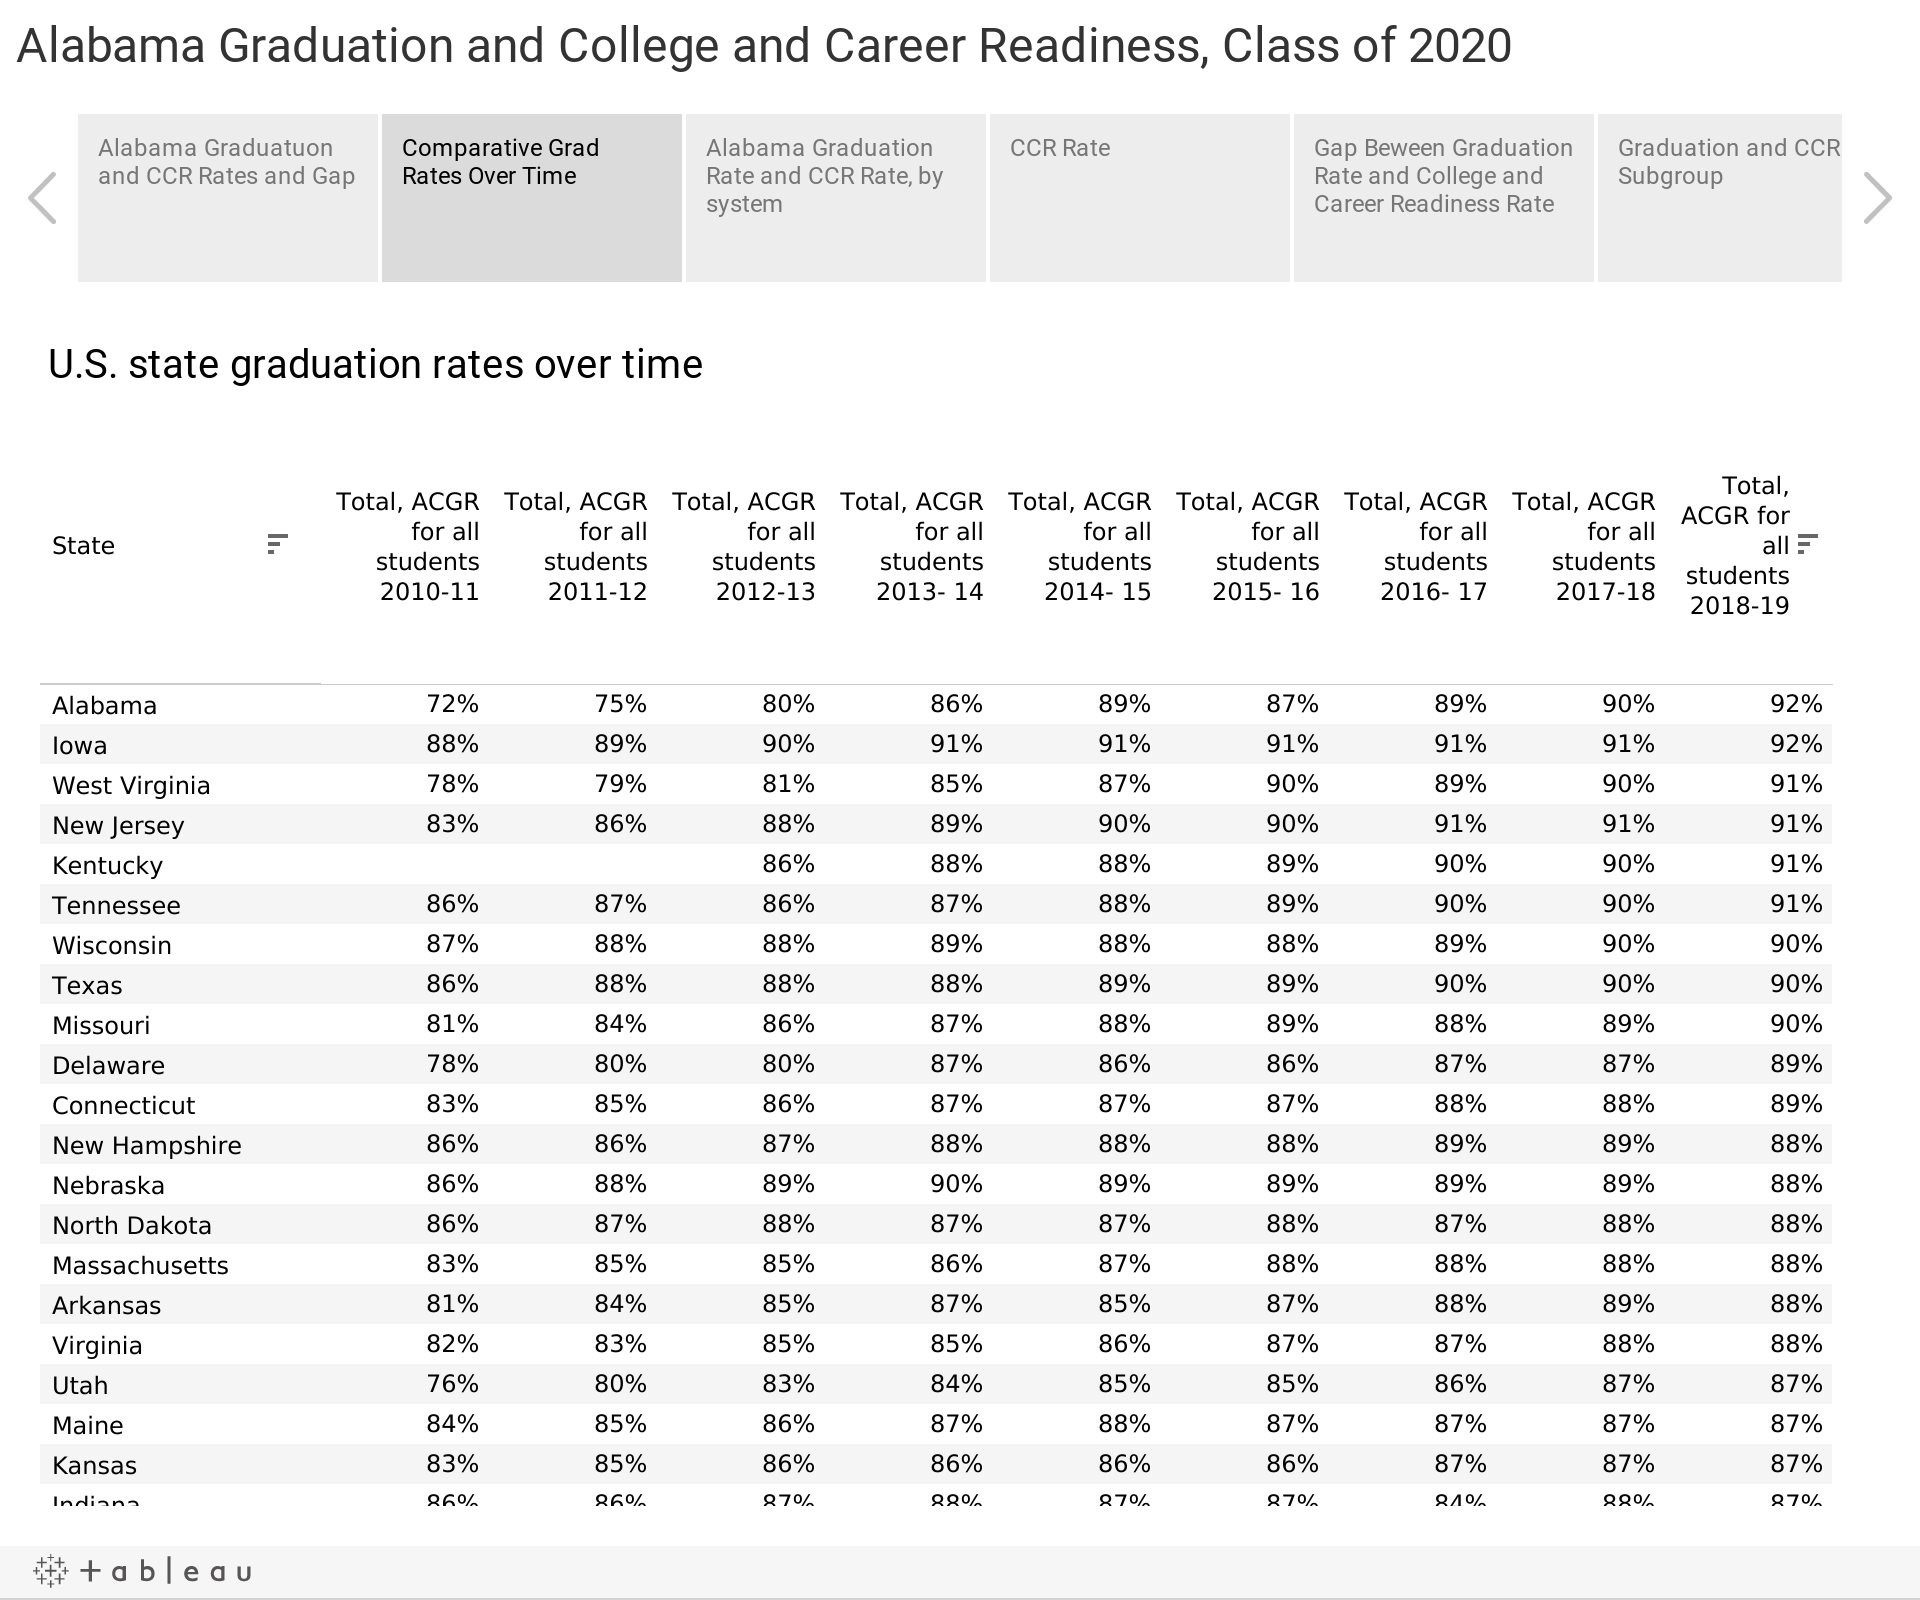 Alabama Graduation and College and Career Readiness, Class of 2020